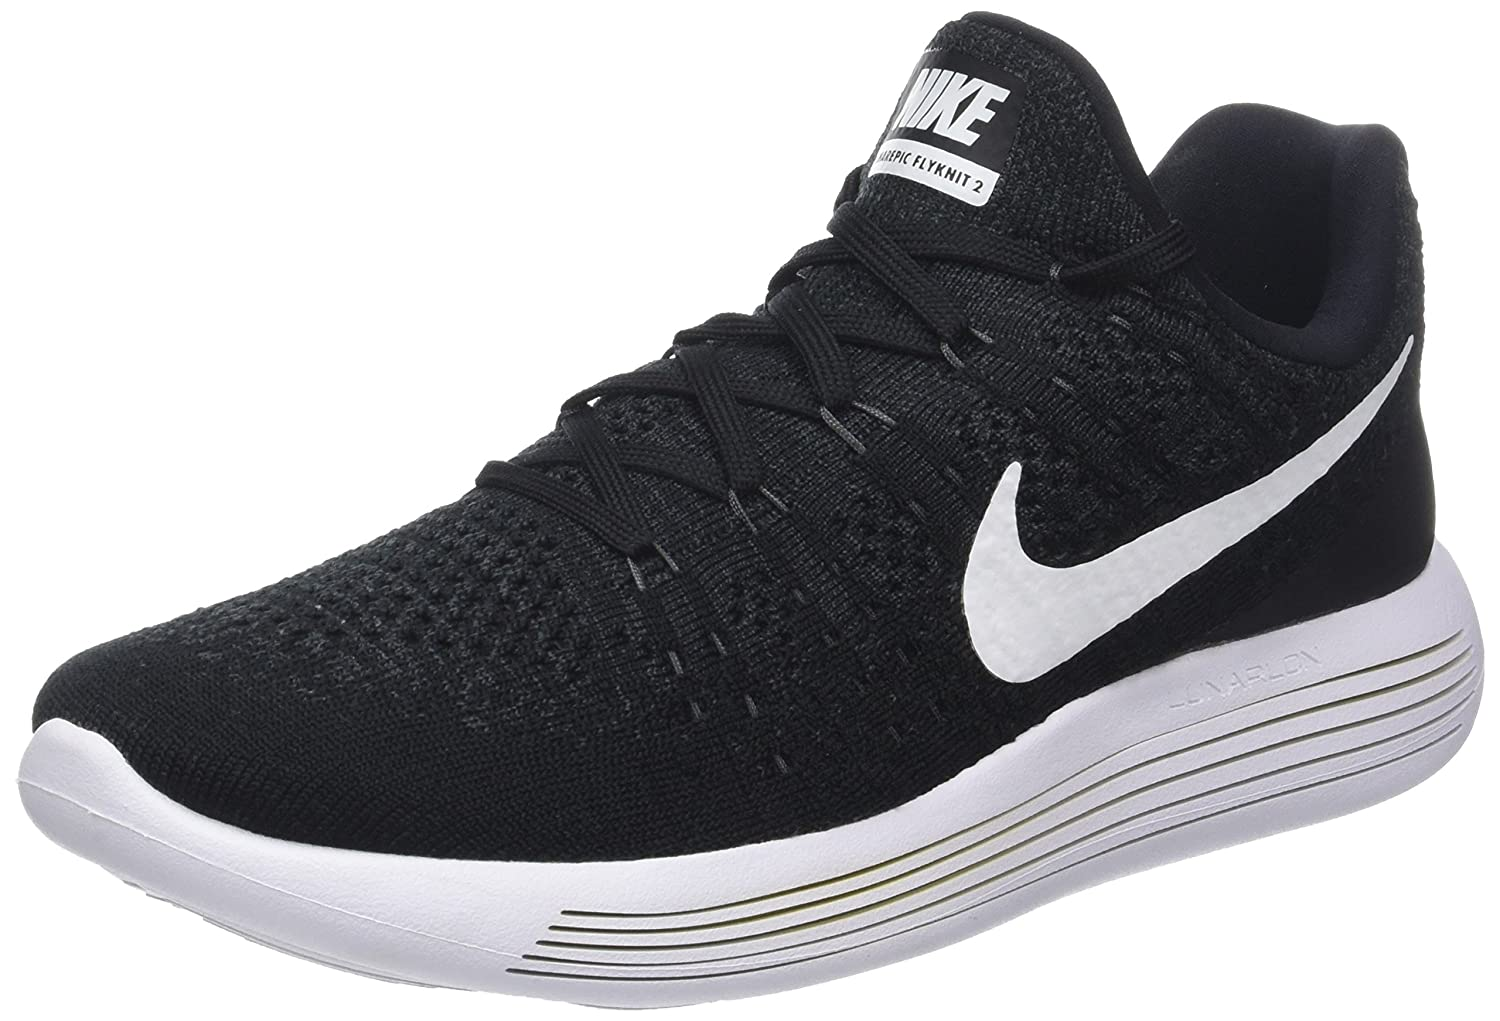 d82d9a612 Nike Men's Lunarepic Low Flyknit 2 Running Shoes: Buy Online at Low Prices  in India - Amazon.in